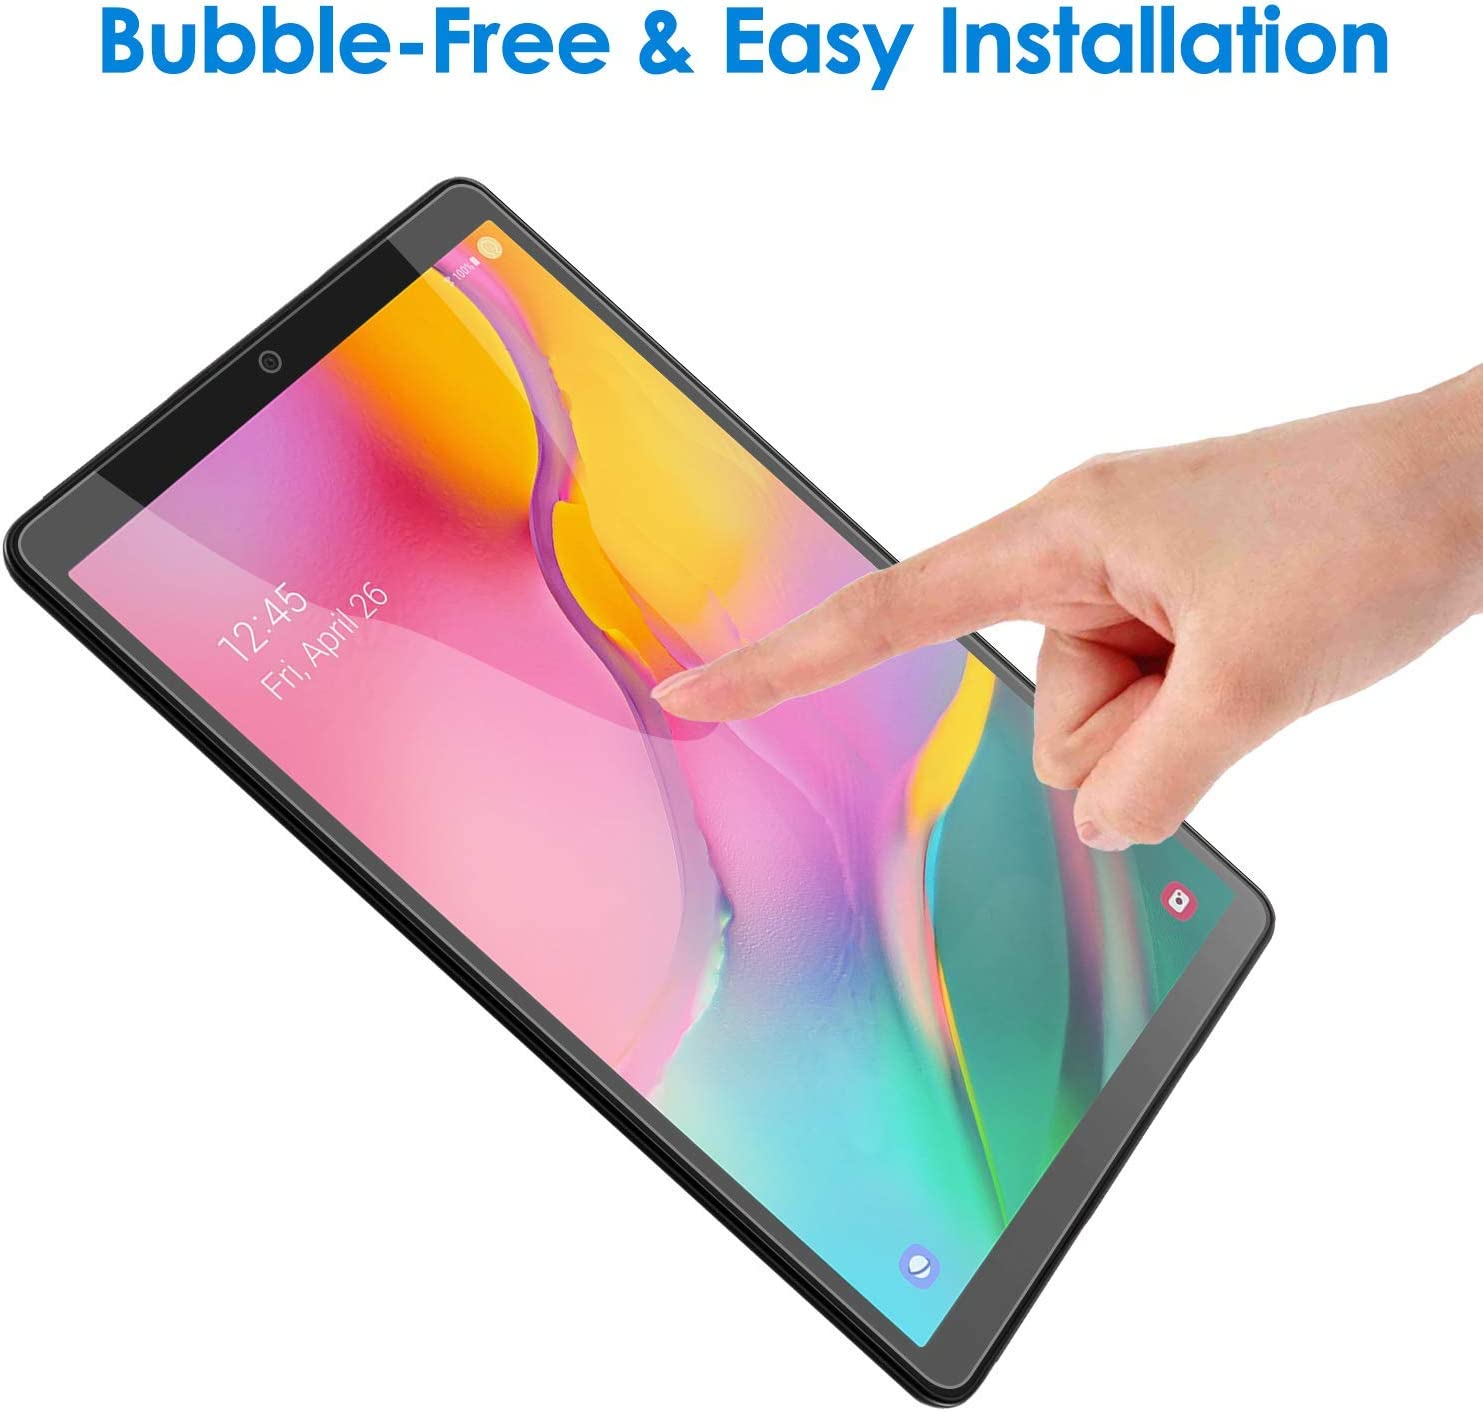 Verre Tremp/é pour Samsung Galaxy Tab A 9.7 inch SM-T550//T555 MadeRy Anti-Rayures Film Protection en Verre Tremp/é Compatible avec Galaxy Tab A 9.7 inch 2 Pi/èces